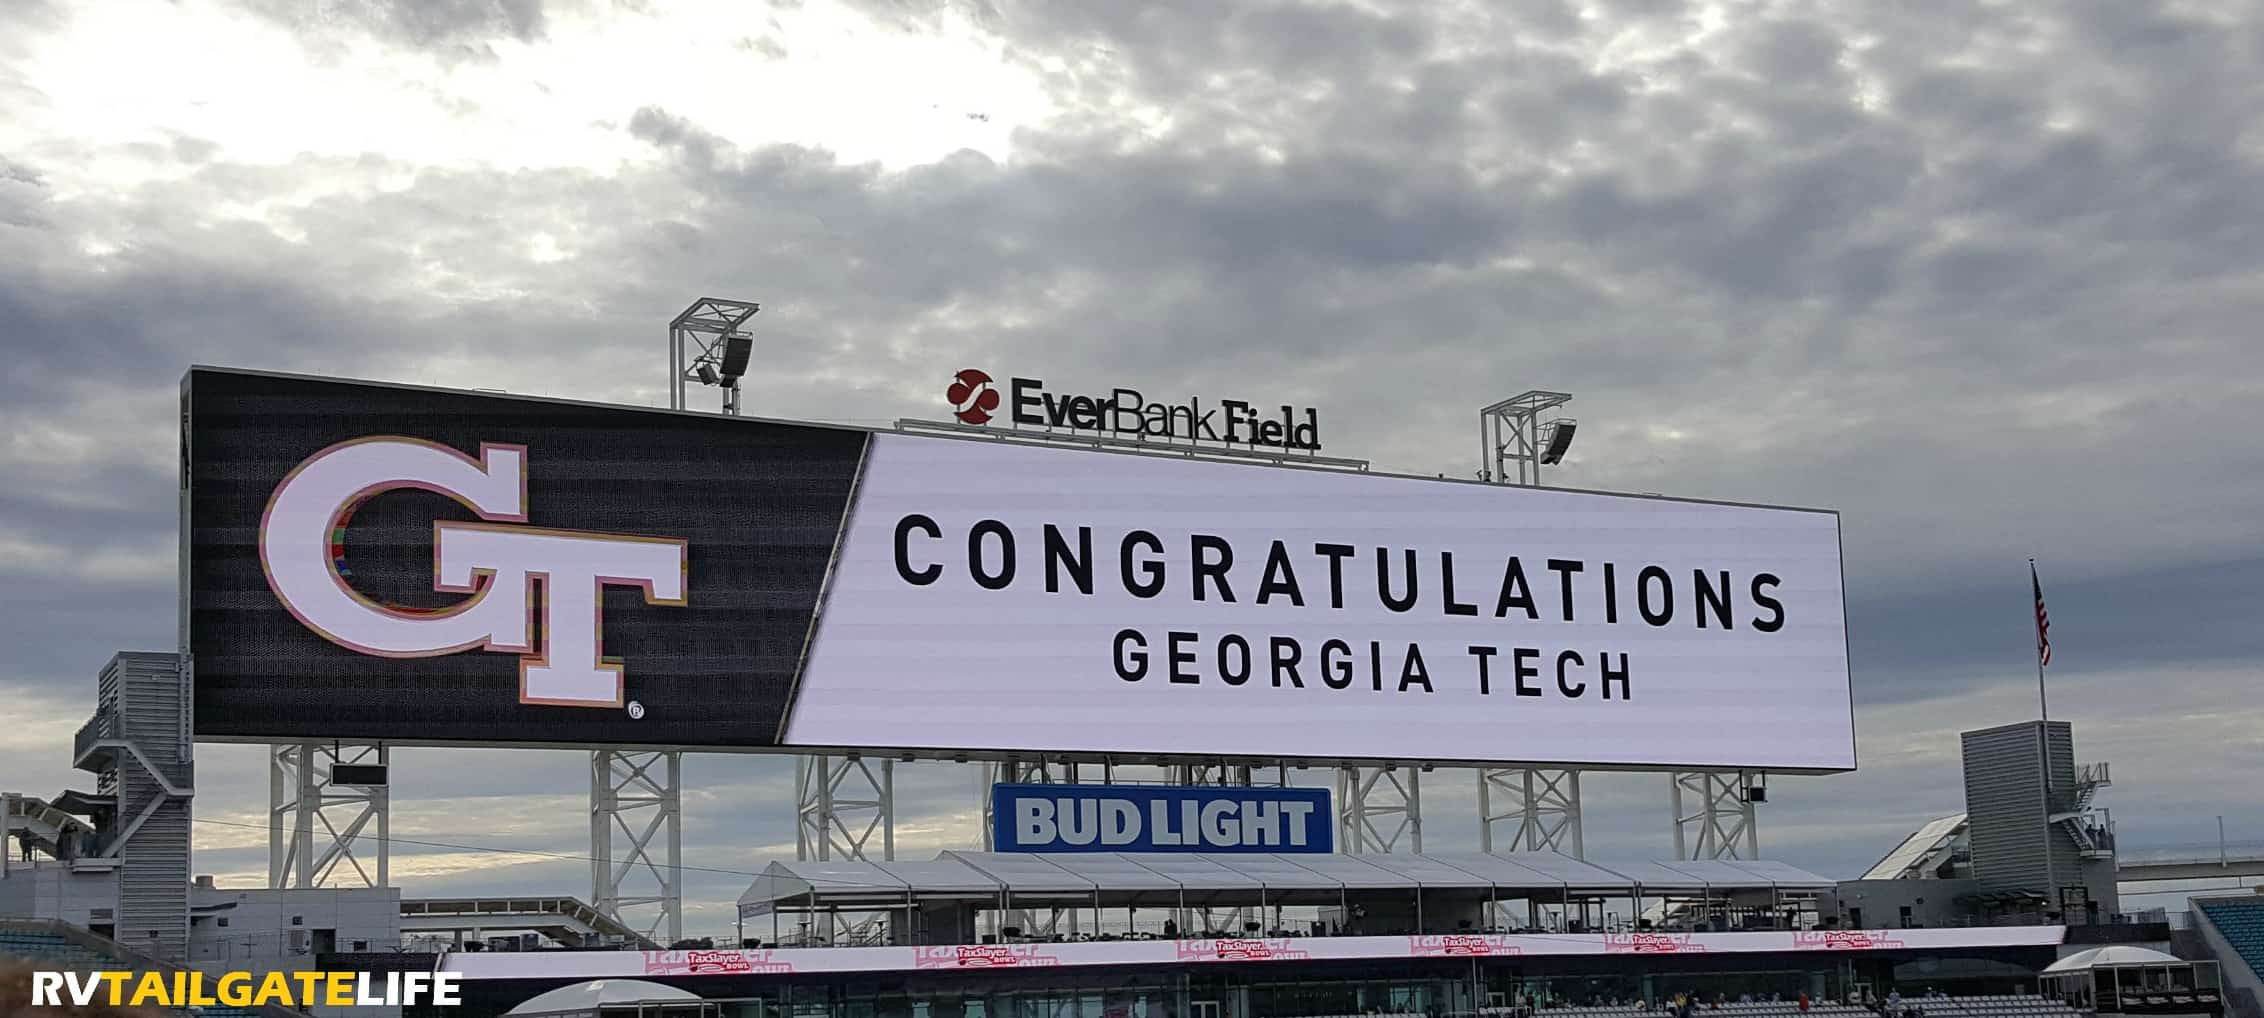 Congratulations Georgia Tech, winners of the TaxSlayer Bowl in Jacksonville, FL